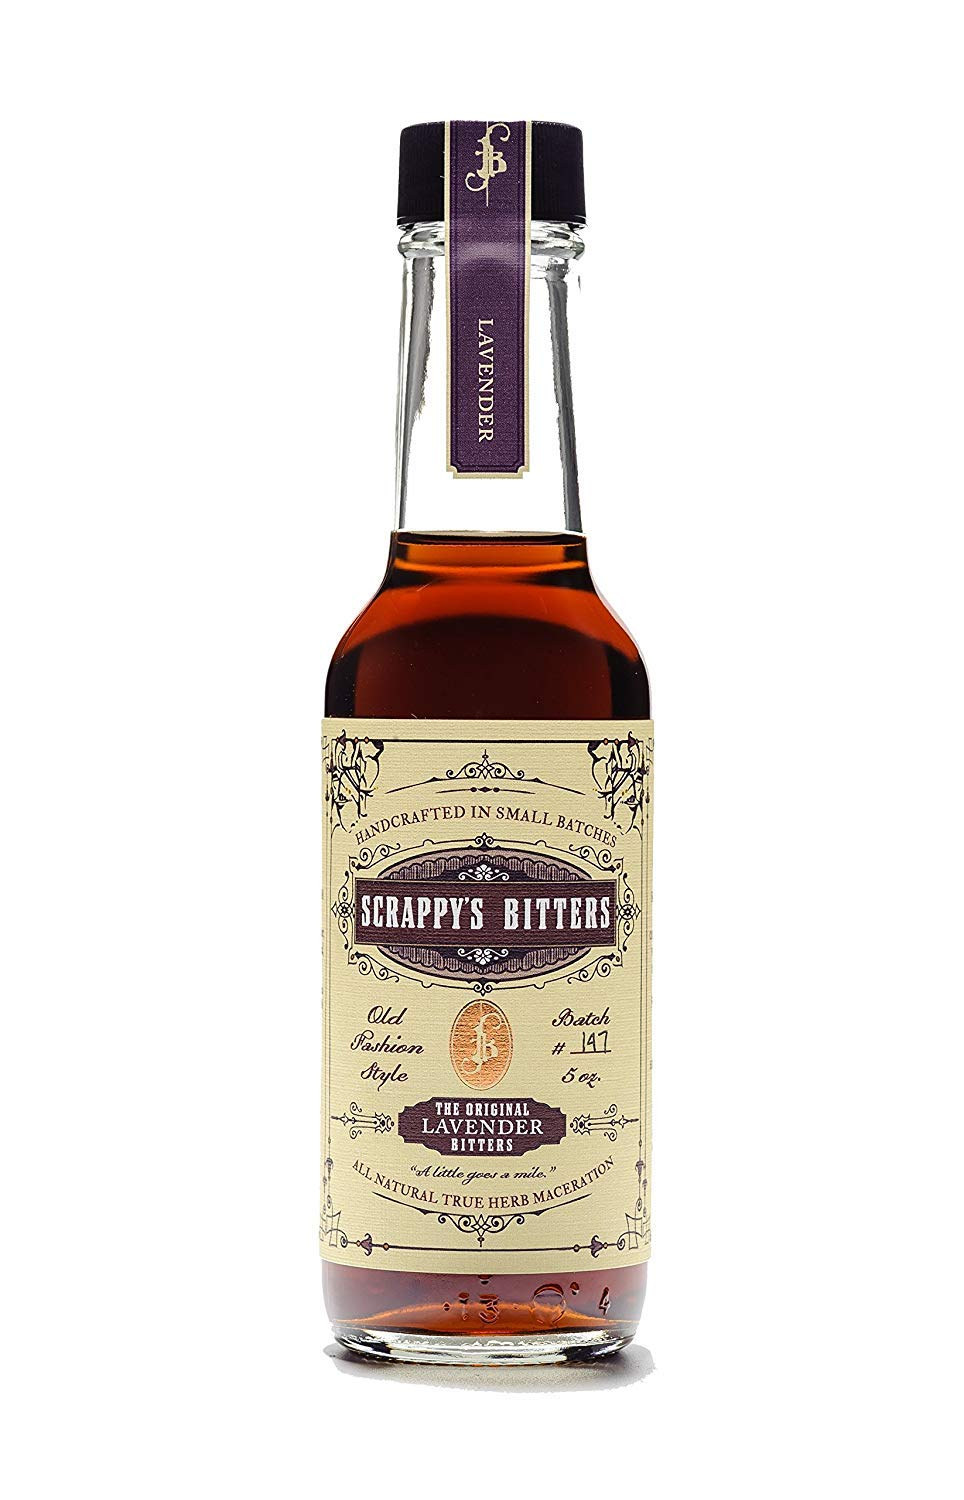 Scrappy's Bitters - Lavender, 5 Ounces - Organic Ingredients, Finest Herbs and Zests, No Extracts, Artificial Flavors, Chemicals or Dyes. Made in the USA